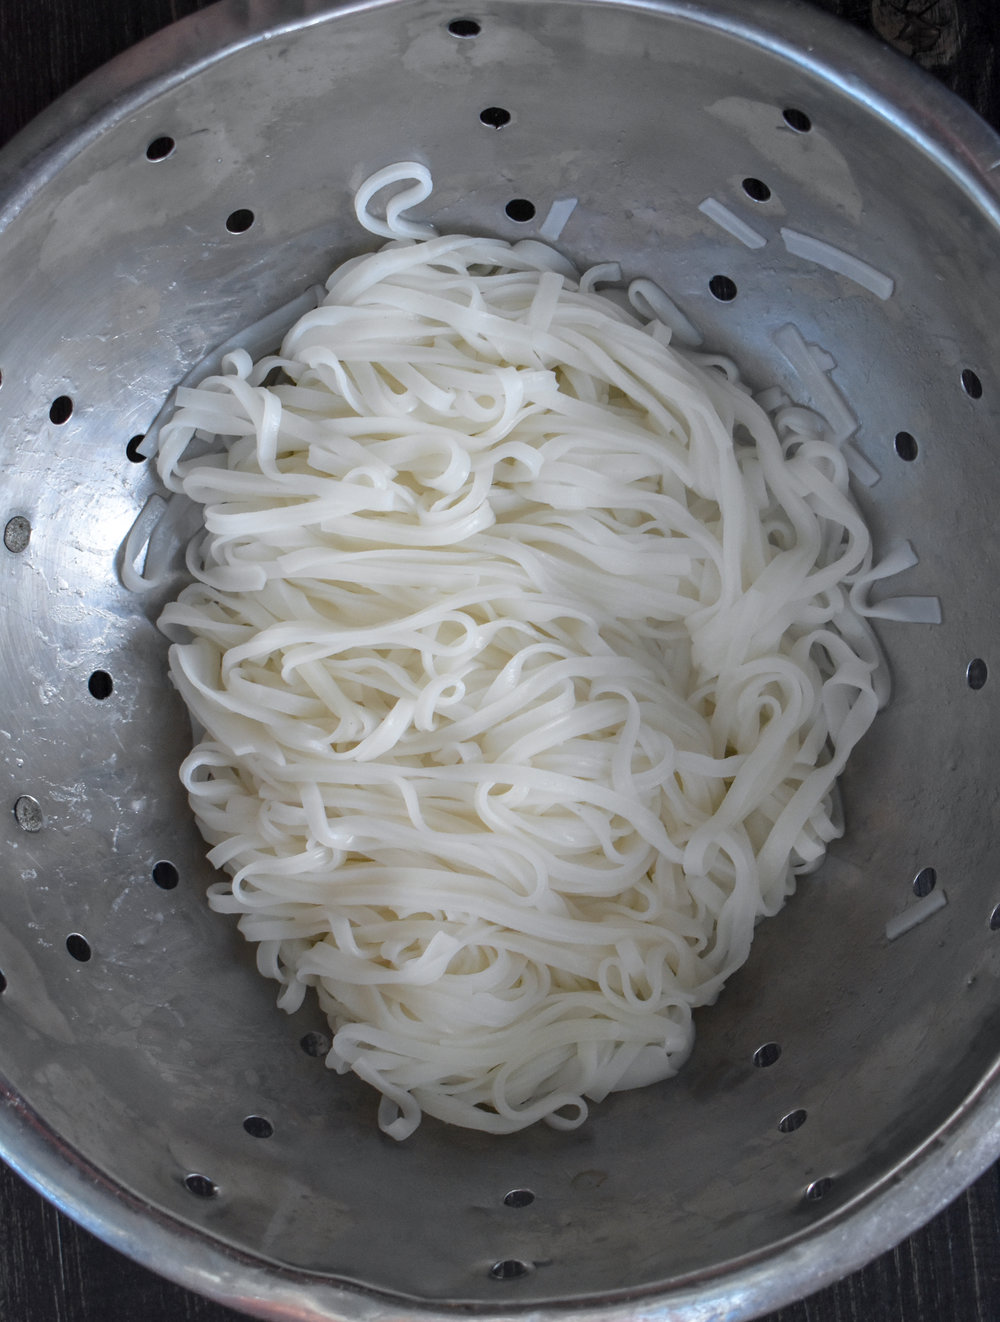 6. Bring a pot of water to boil and add ramen noodles. Cook to instructions. Drain and set aside.